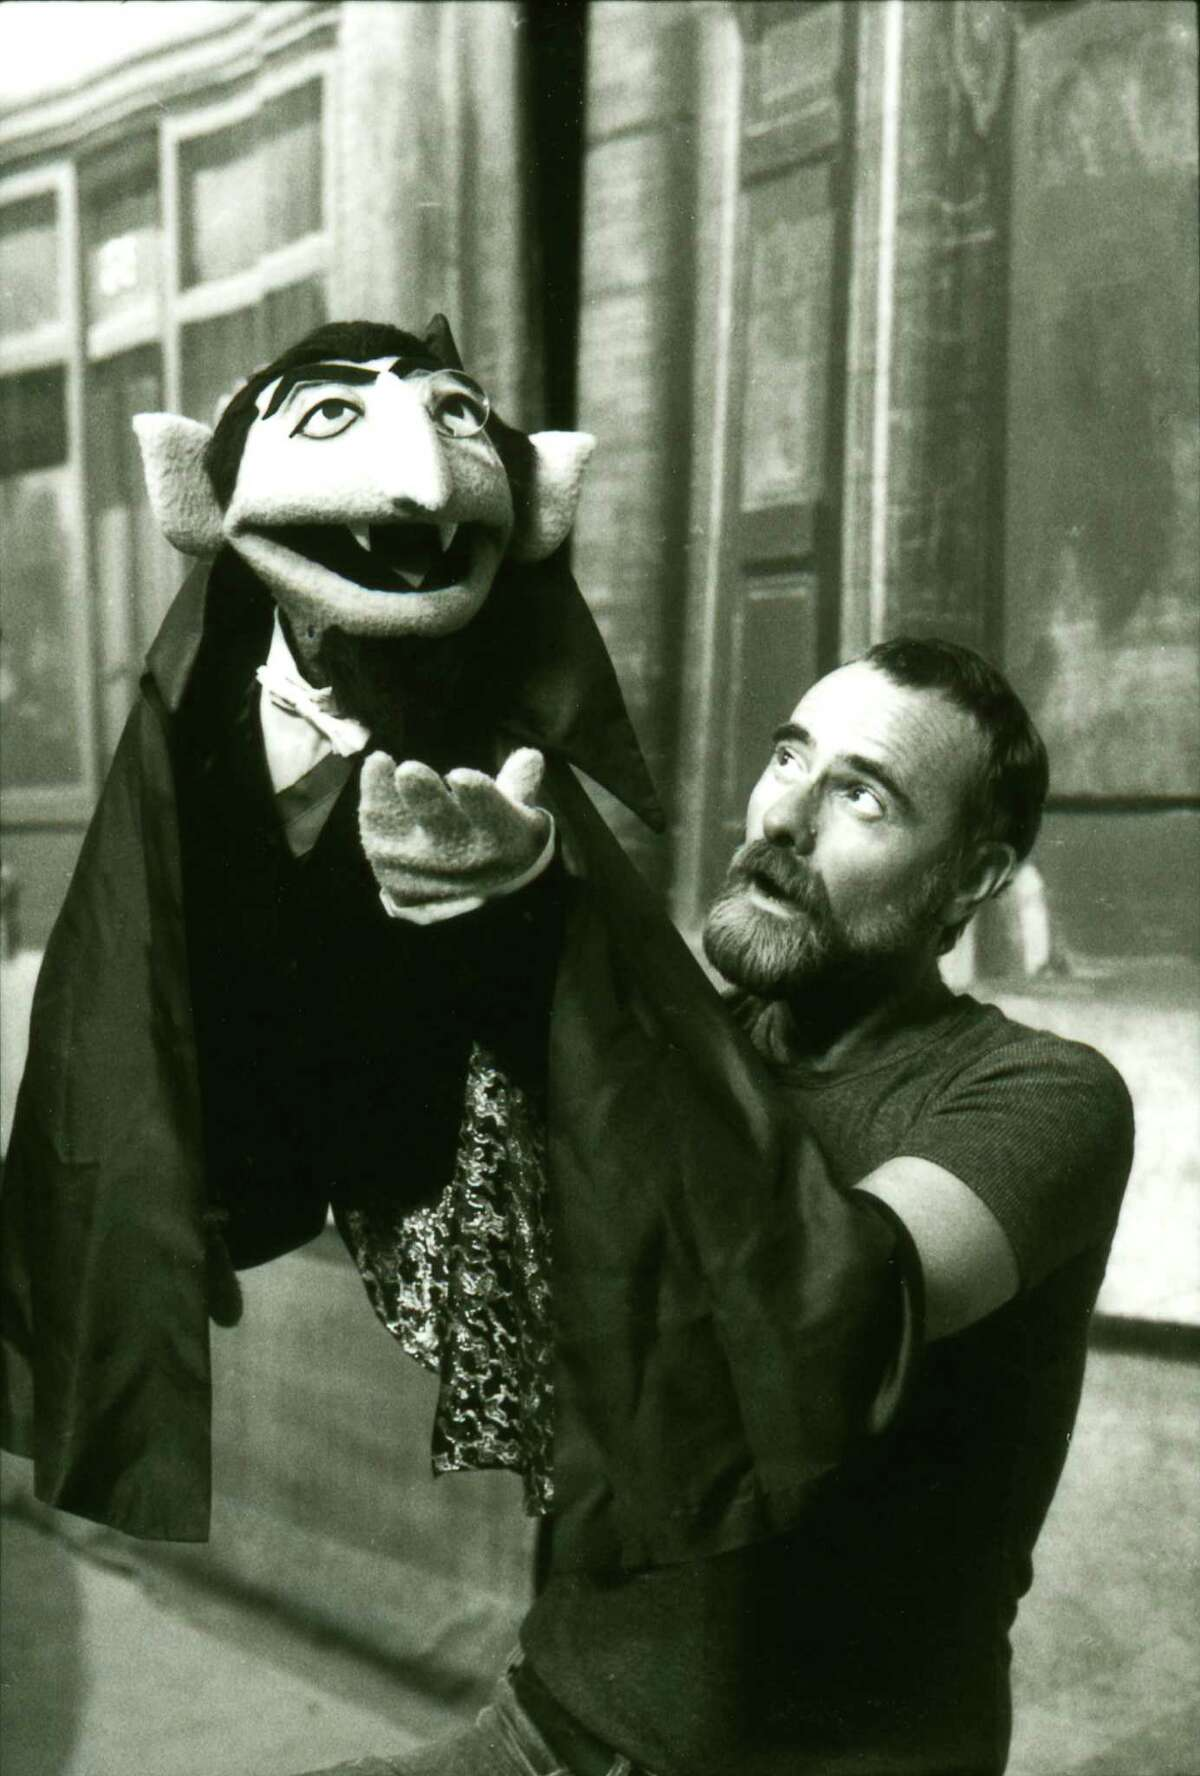 Puppeteer Jerry Nelson performs as Count von Count for PBS'